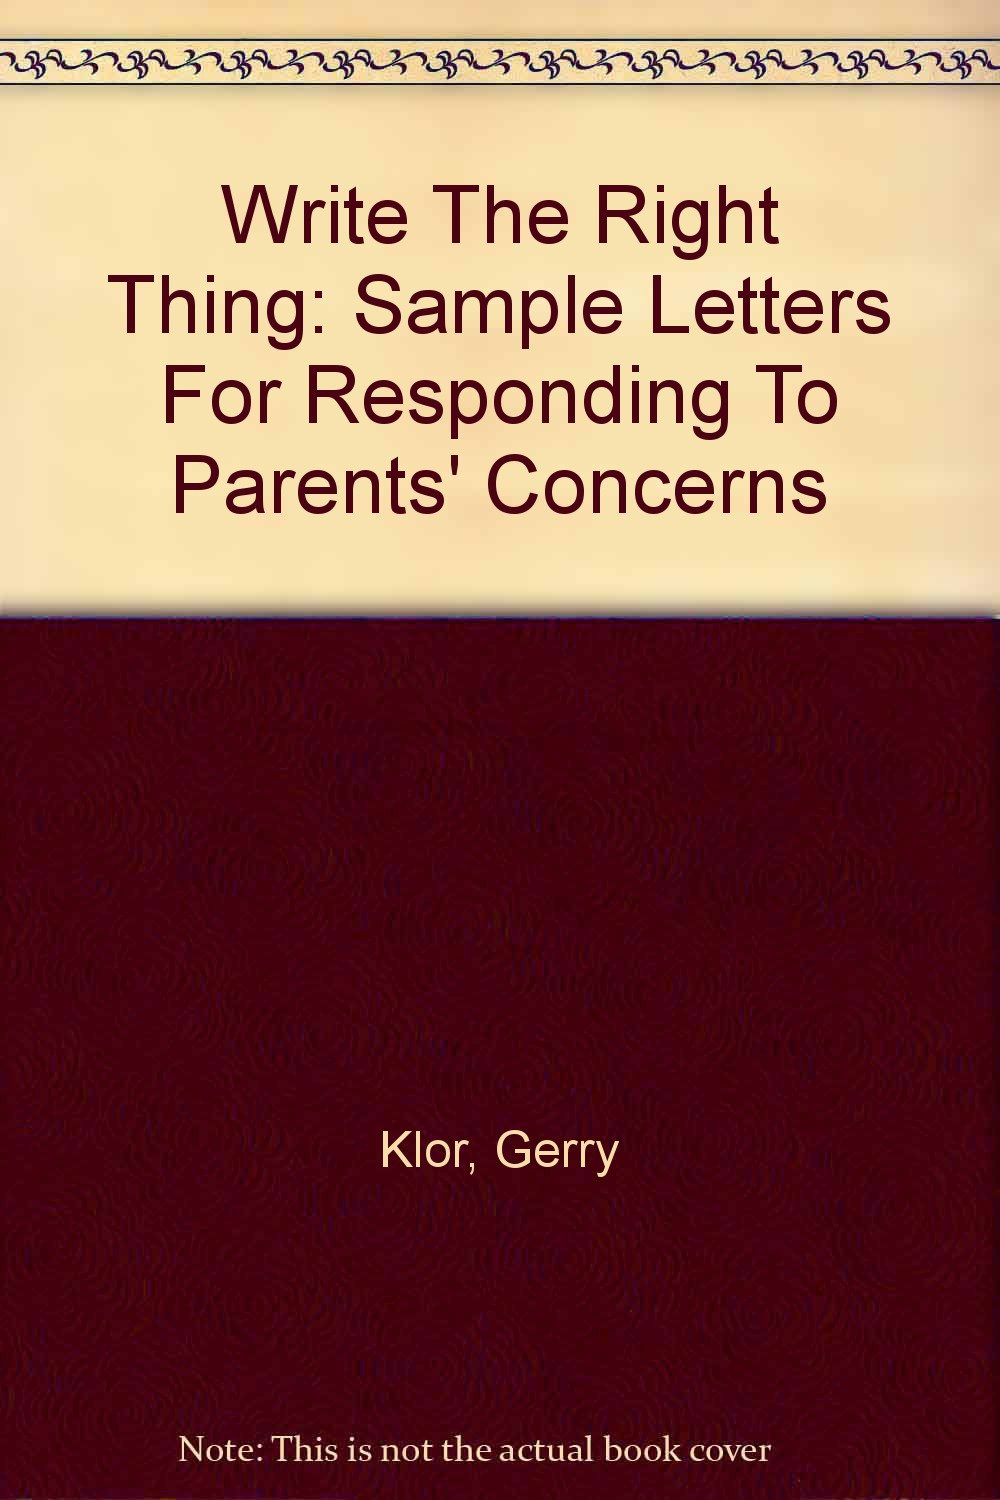 Write The Right Thing: Sample Letters For Responding To